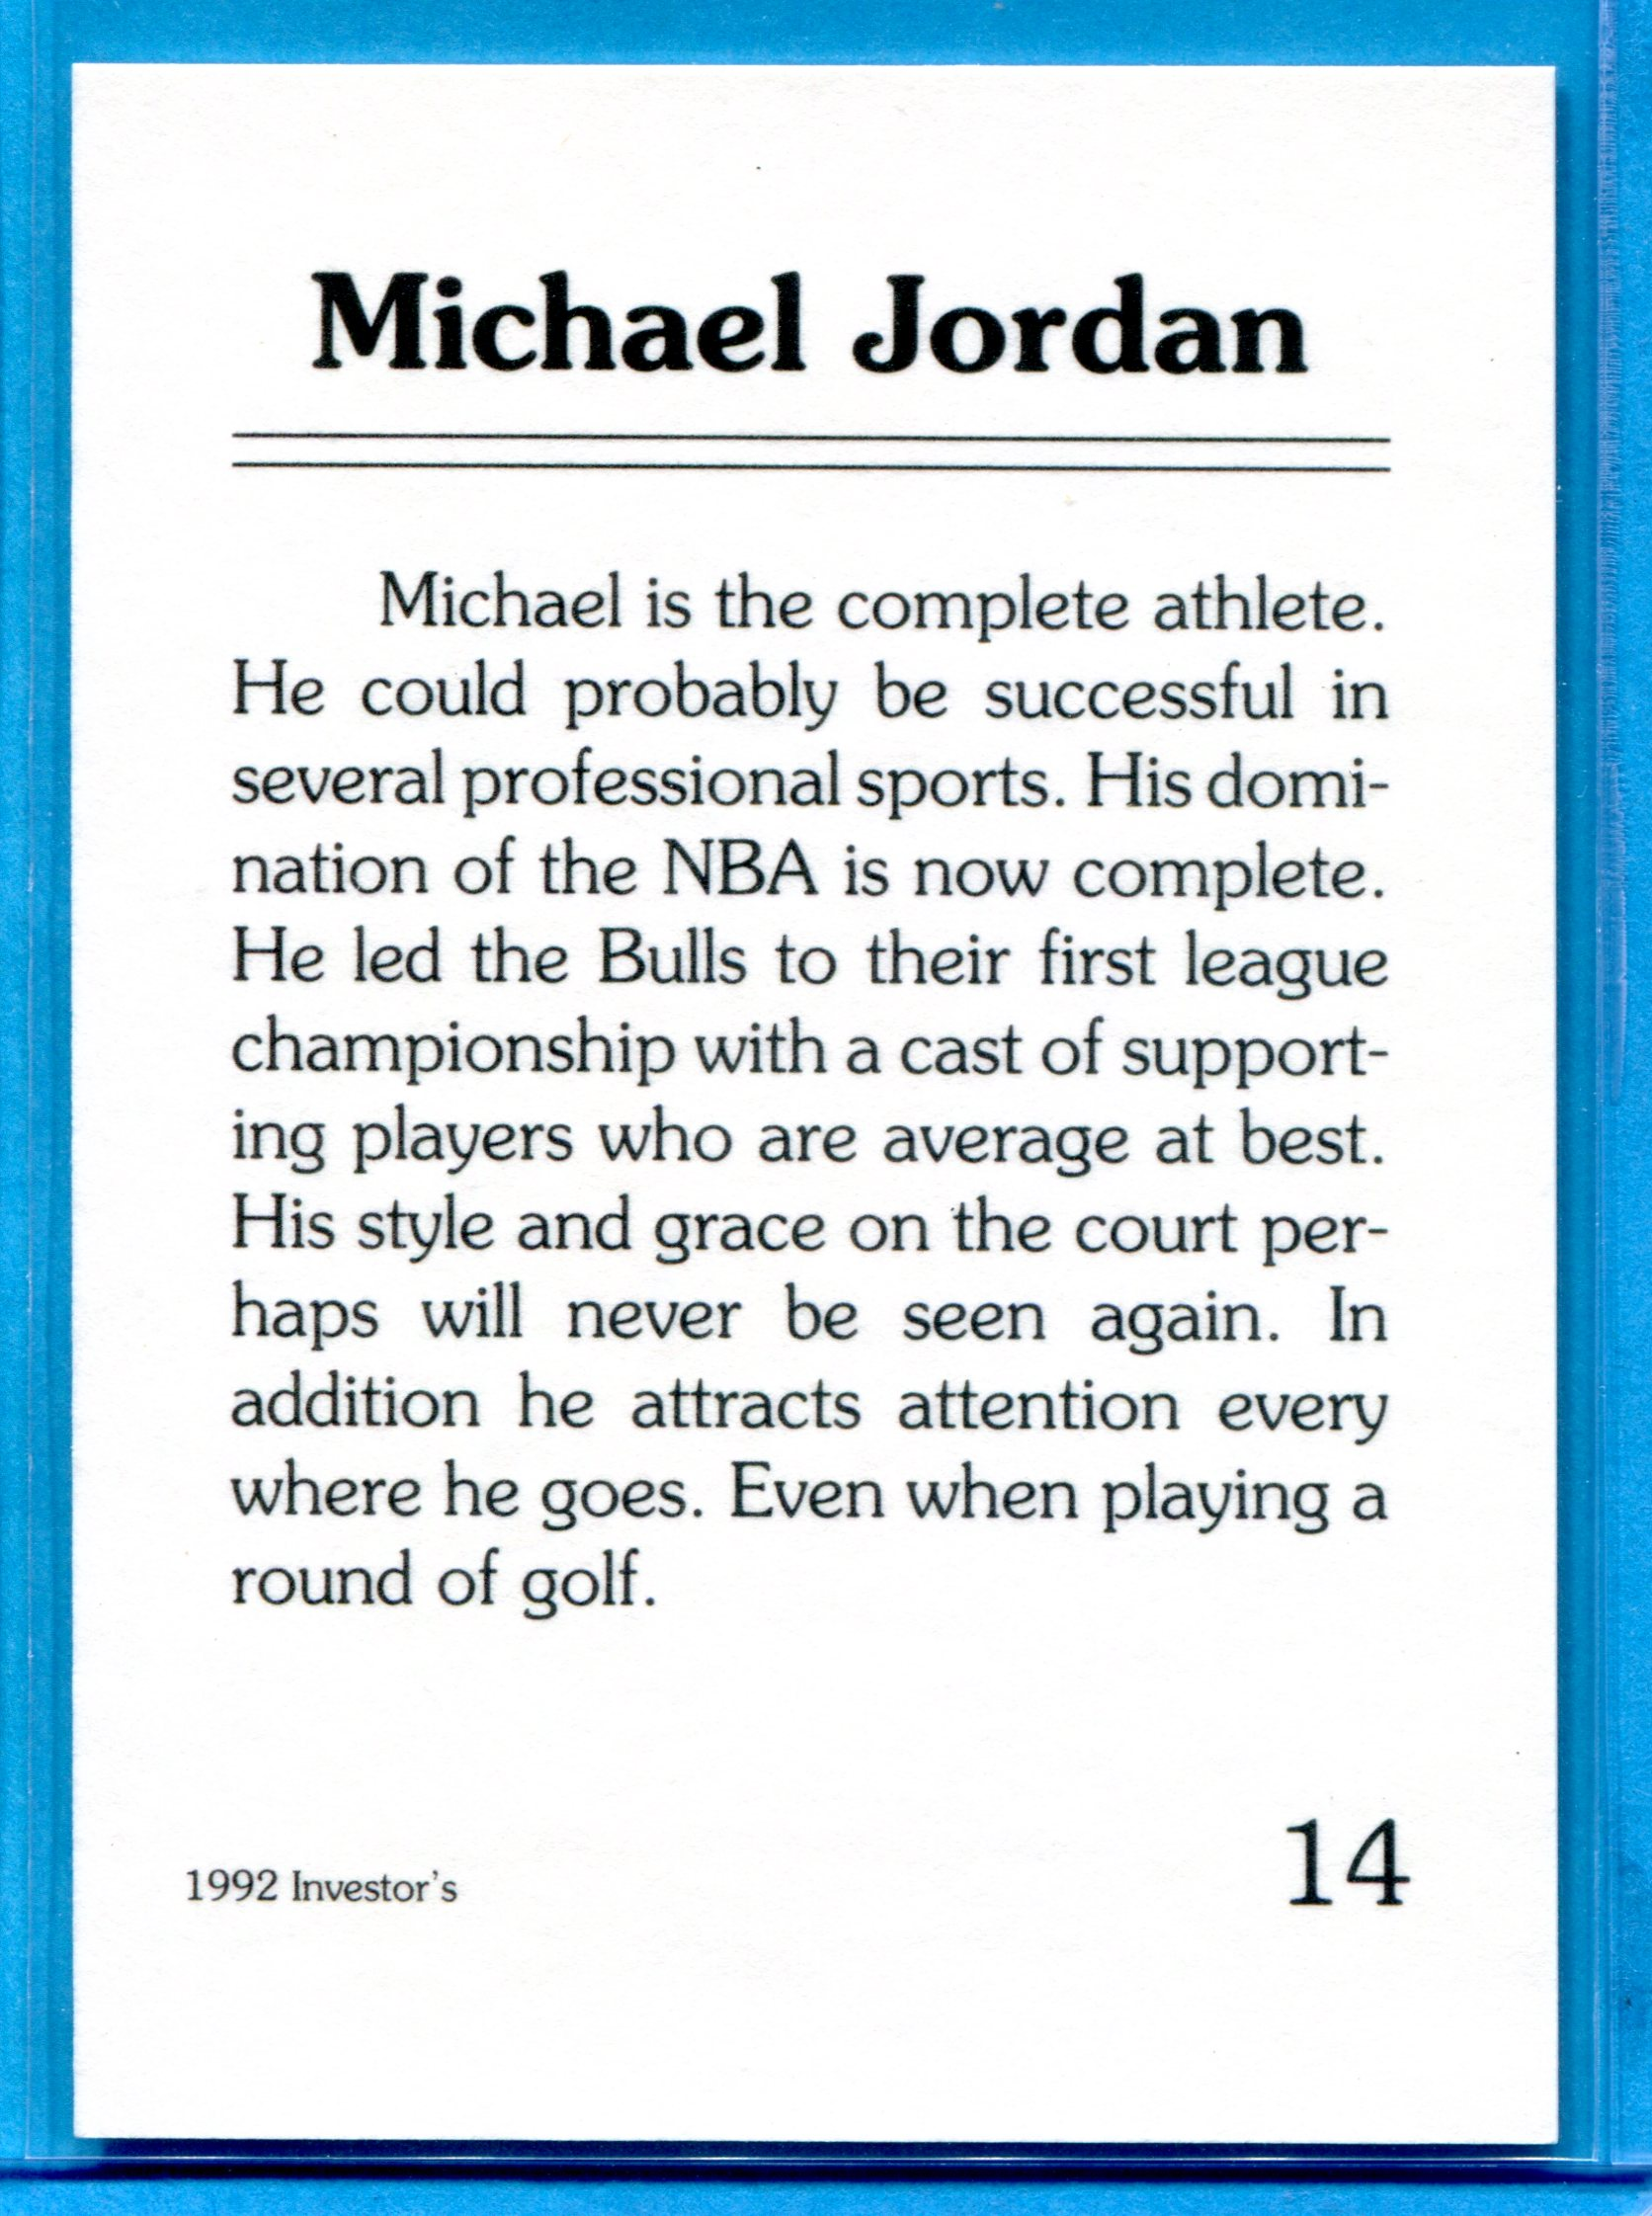 1992 Investor's Journal Black Gold Golf Card #14 Michael Jordan back image